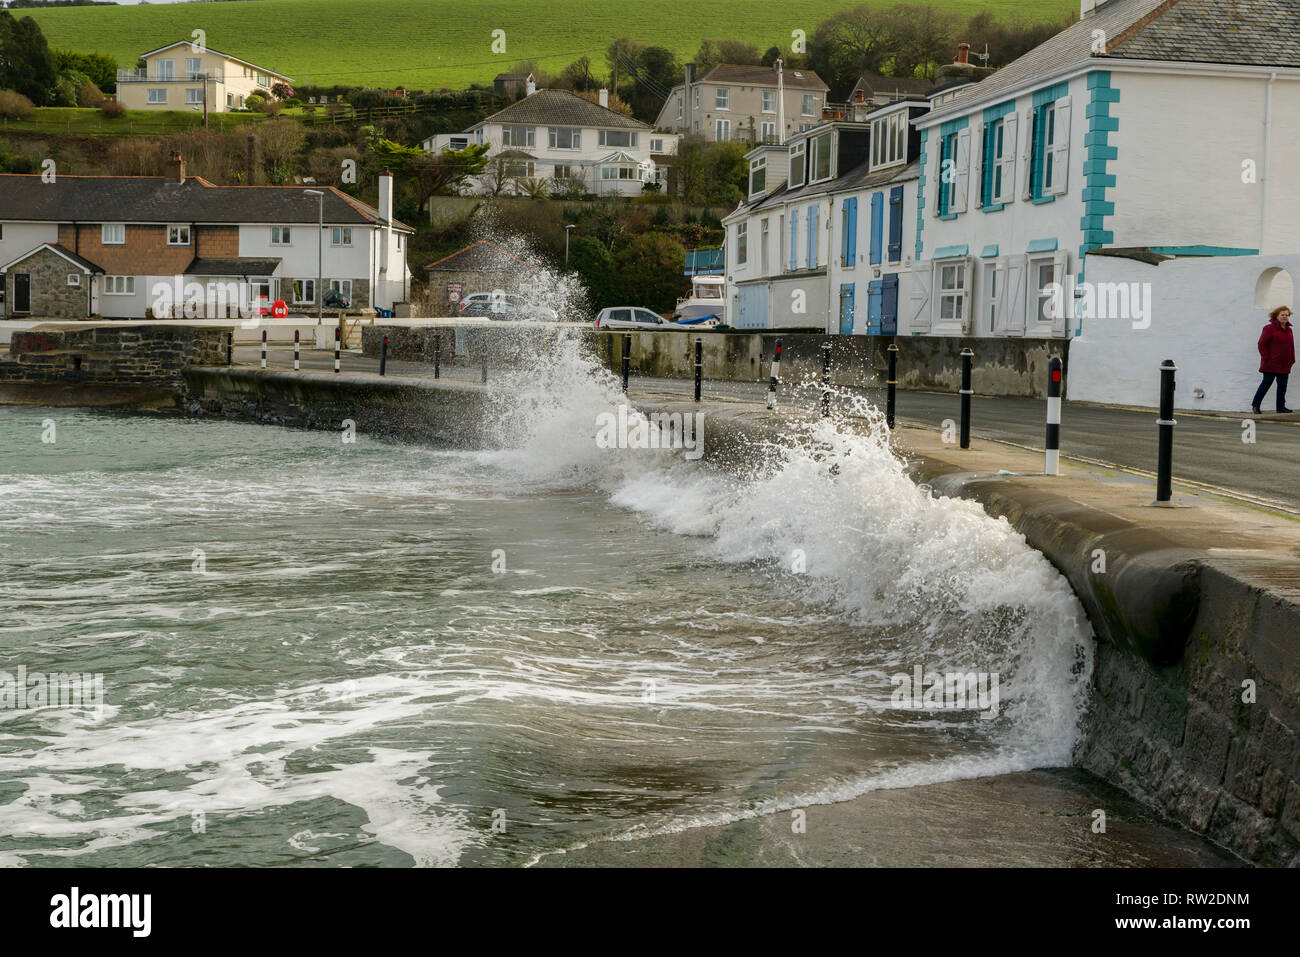 Editorial: People & Logos. Portmellon, Mevagissey, Cornwall, UK. 03/03/2019. Large swells kicked up by storm Freya crash against the sea defences. Stock Photo